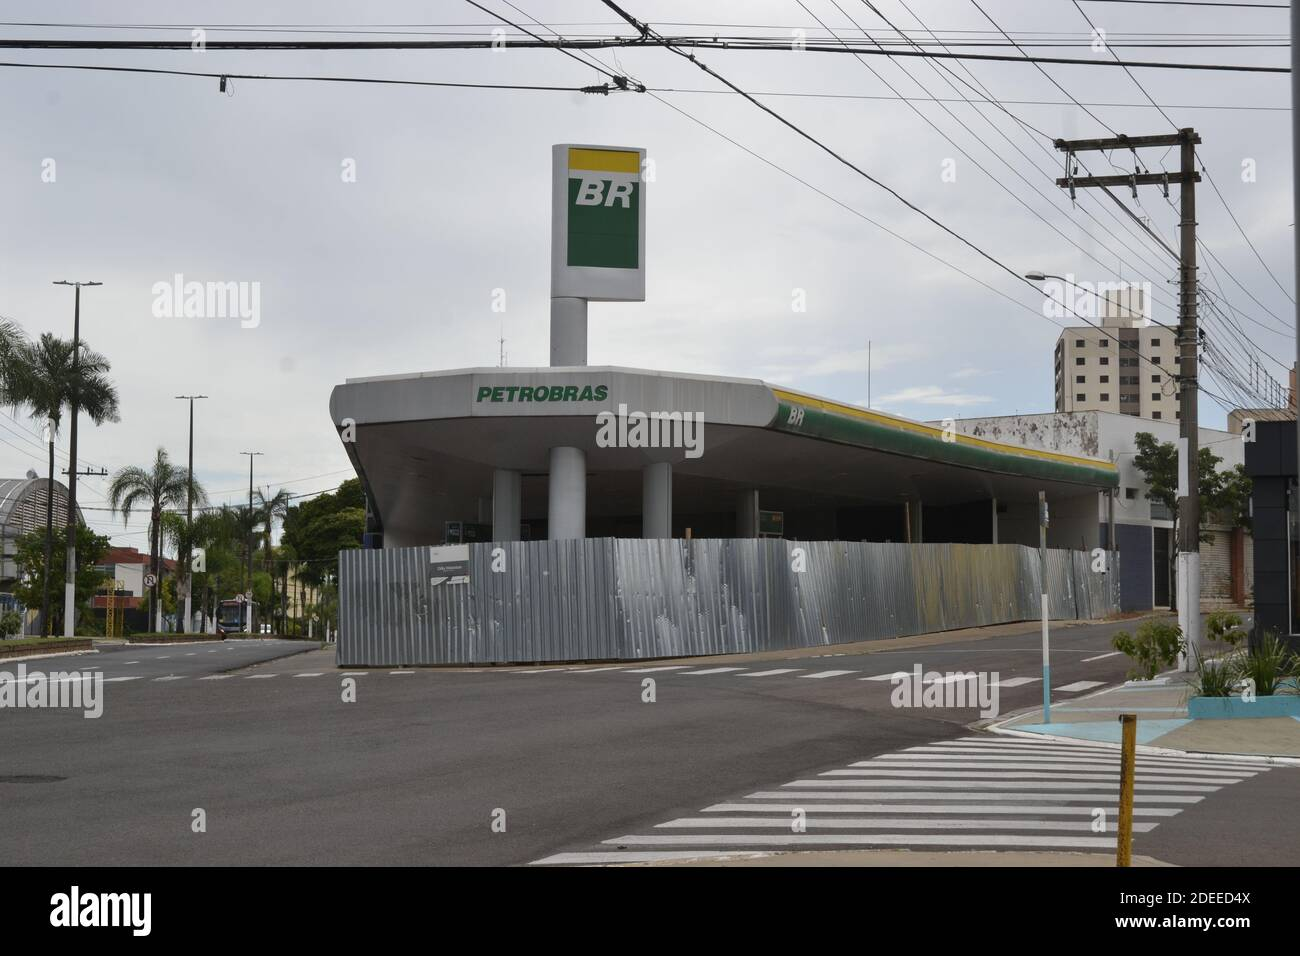 Brazil State Of Sao Paulo November 27 2020 Abandoned Gas Station In The City Center In The Countryside Of Sao Paulo Brazil Stock Photo Alamy